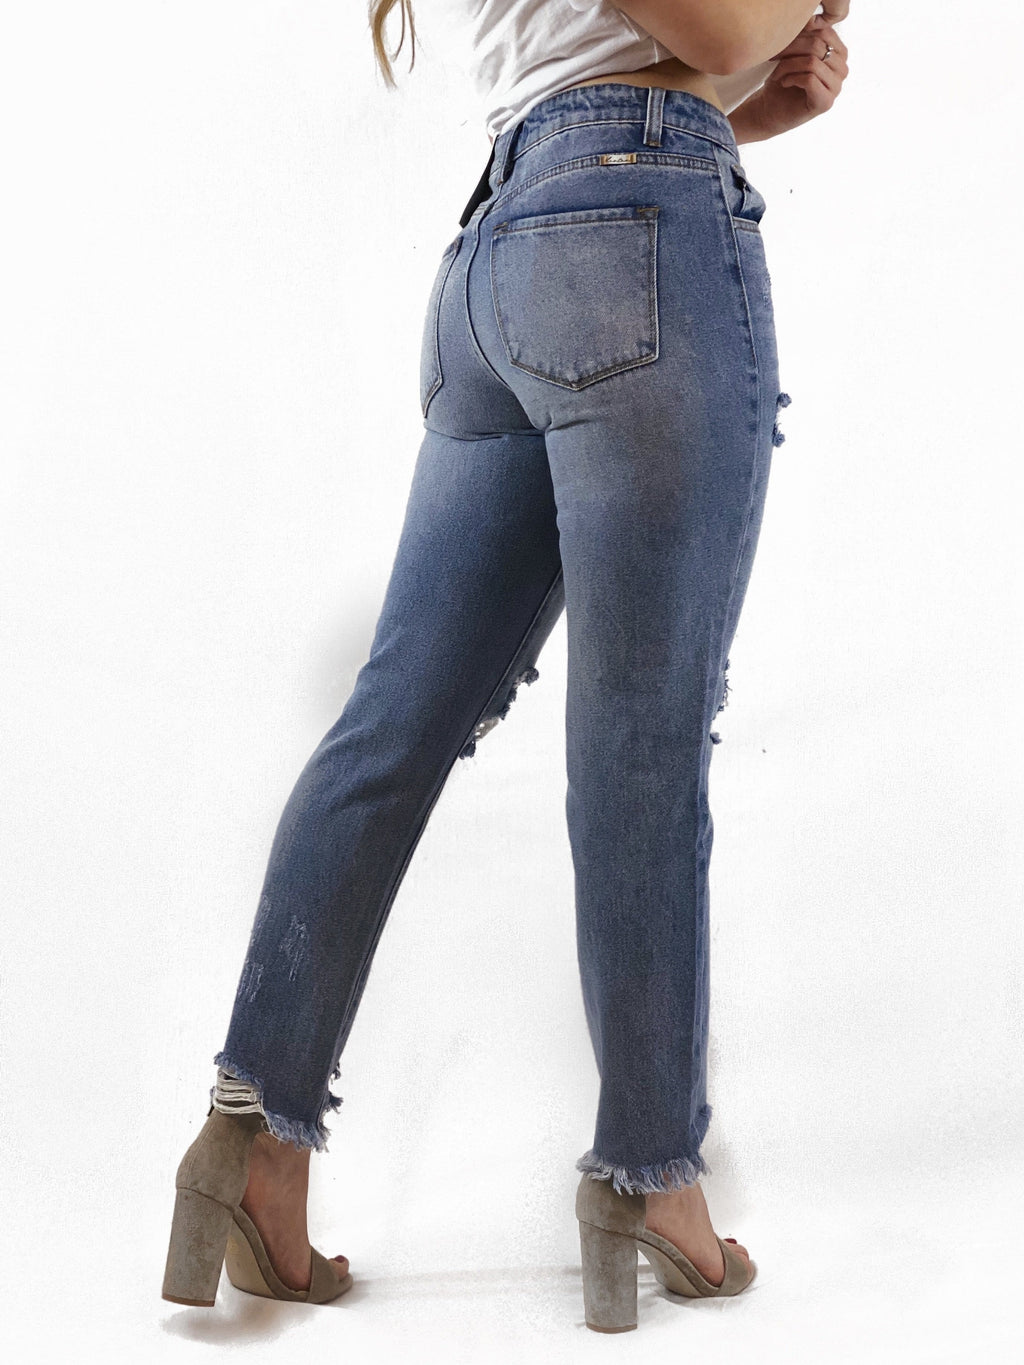 Light Wash Straight Leg Jeans - bigcityboutique